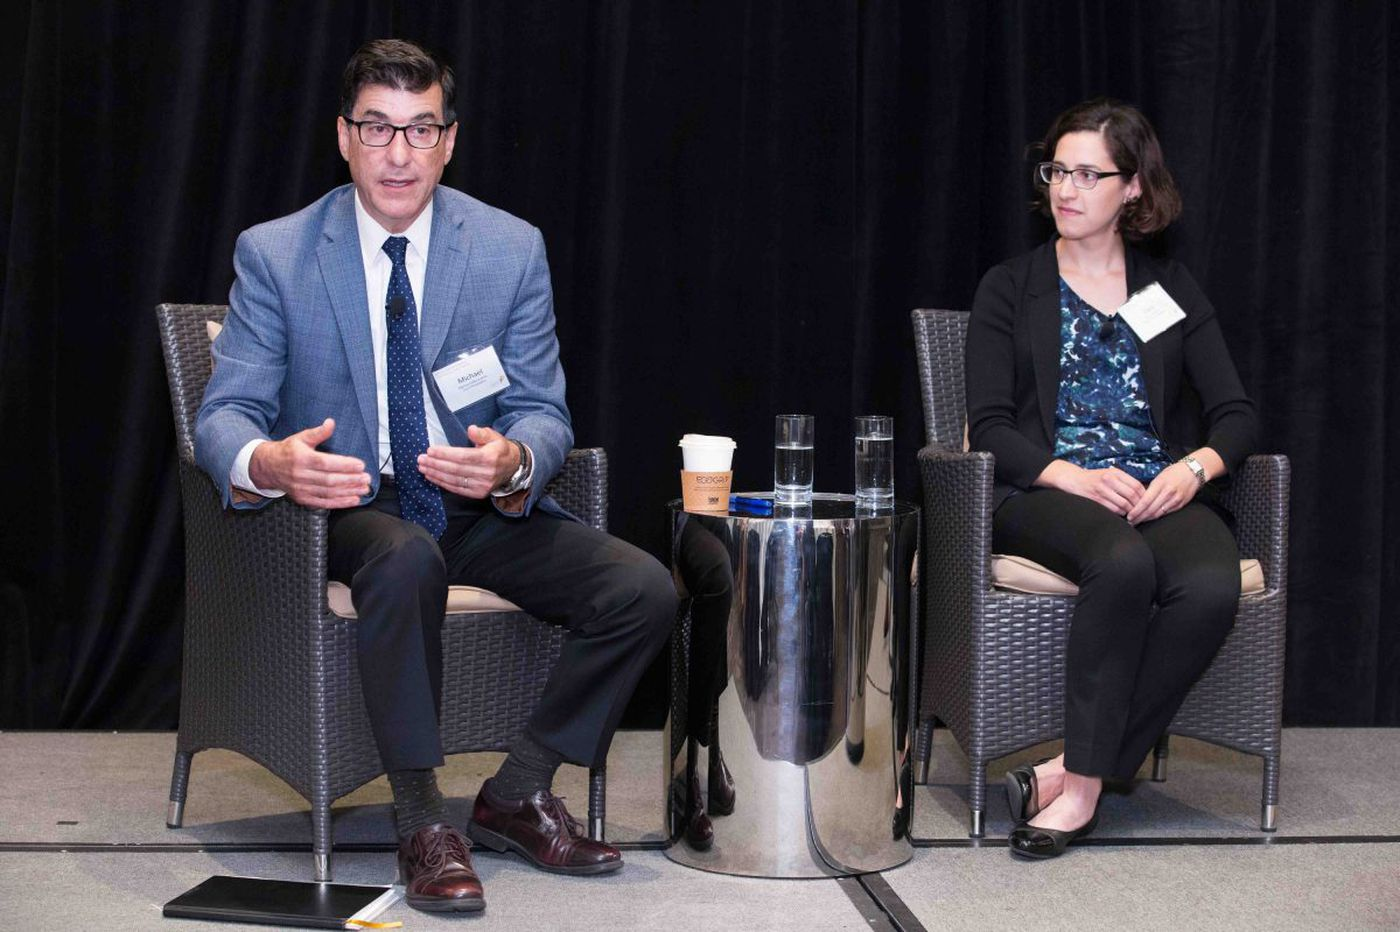 Conference focuses on building partnerships with urban libraries